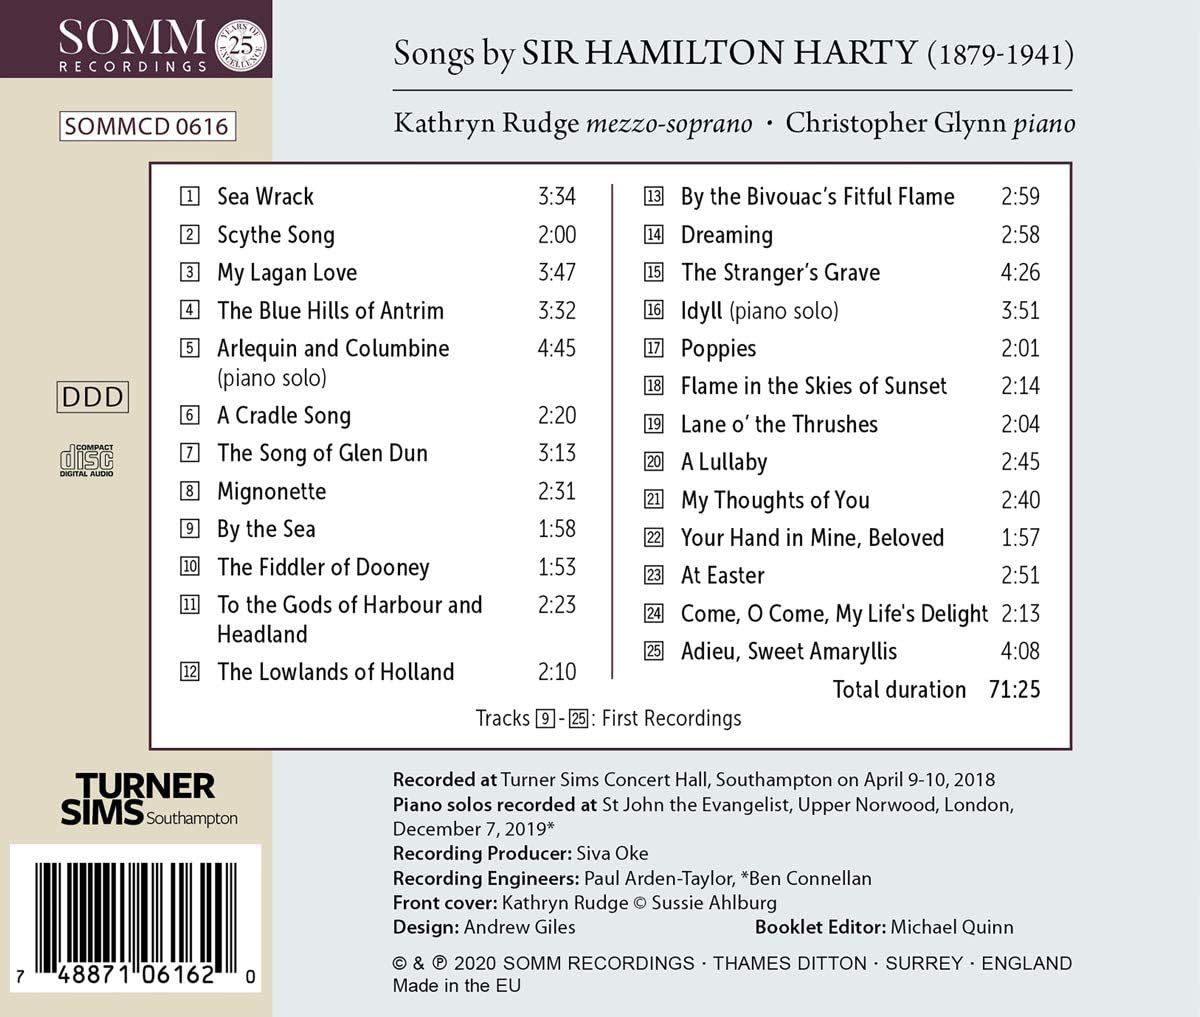 Photo No.2 of Songs by Sir Hamilton Harty